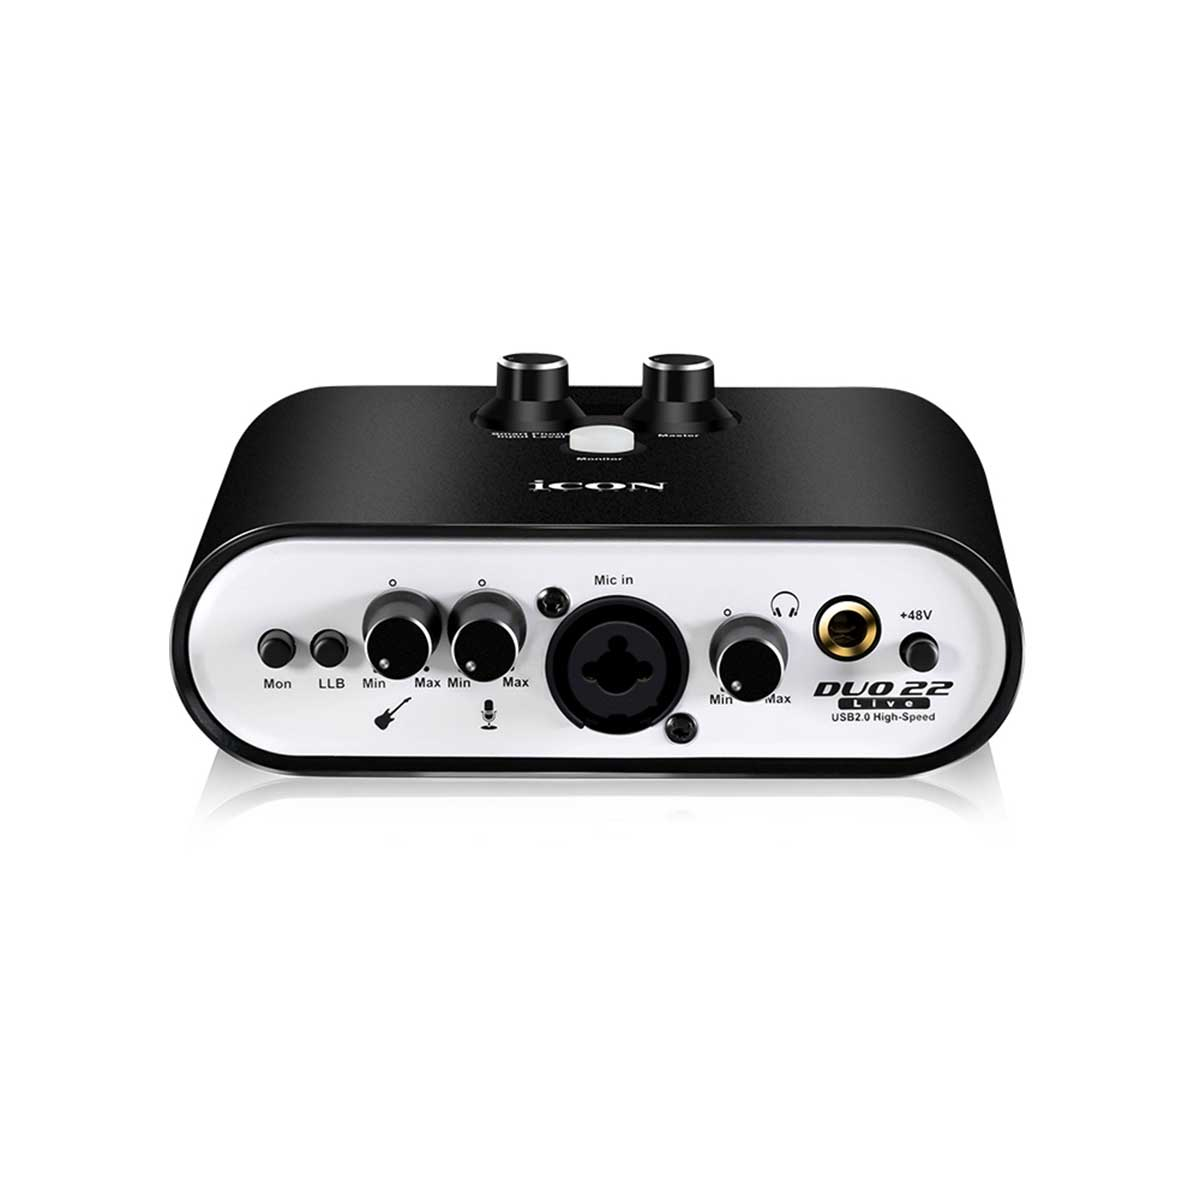 Icon Duo22 Live USB Audio Interface for Computers, Tablets, and Smartphones